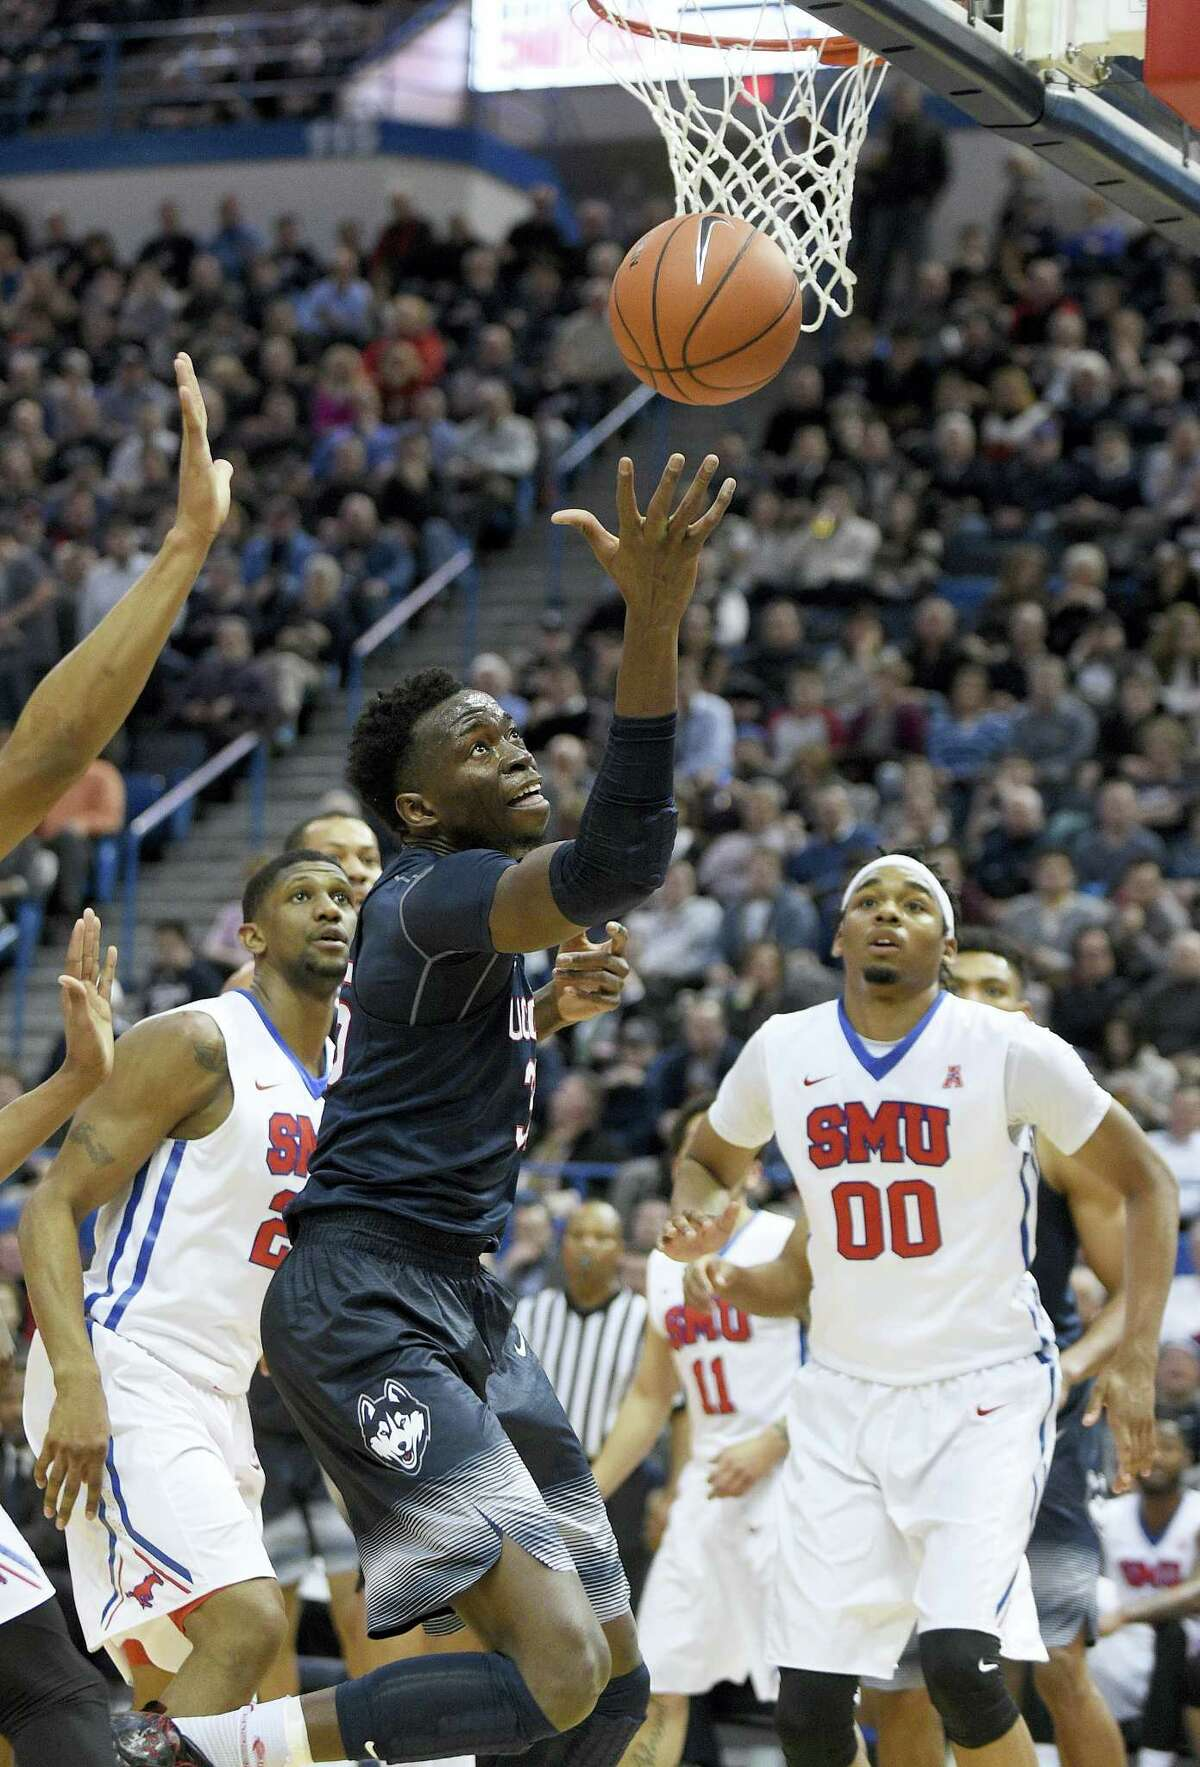 UConn's Amida Brimah (35) grabs a rebound as SMU's Ben Moore looks on during the first half Thursday.